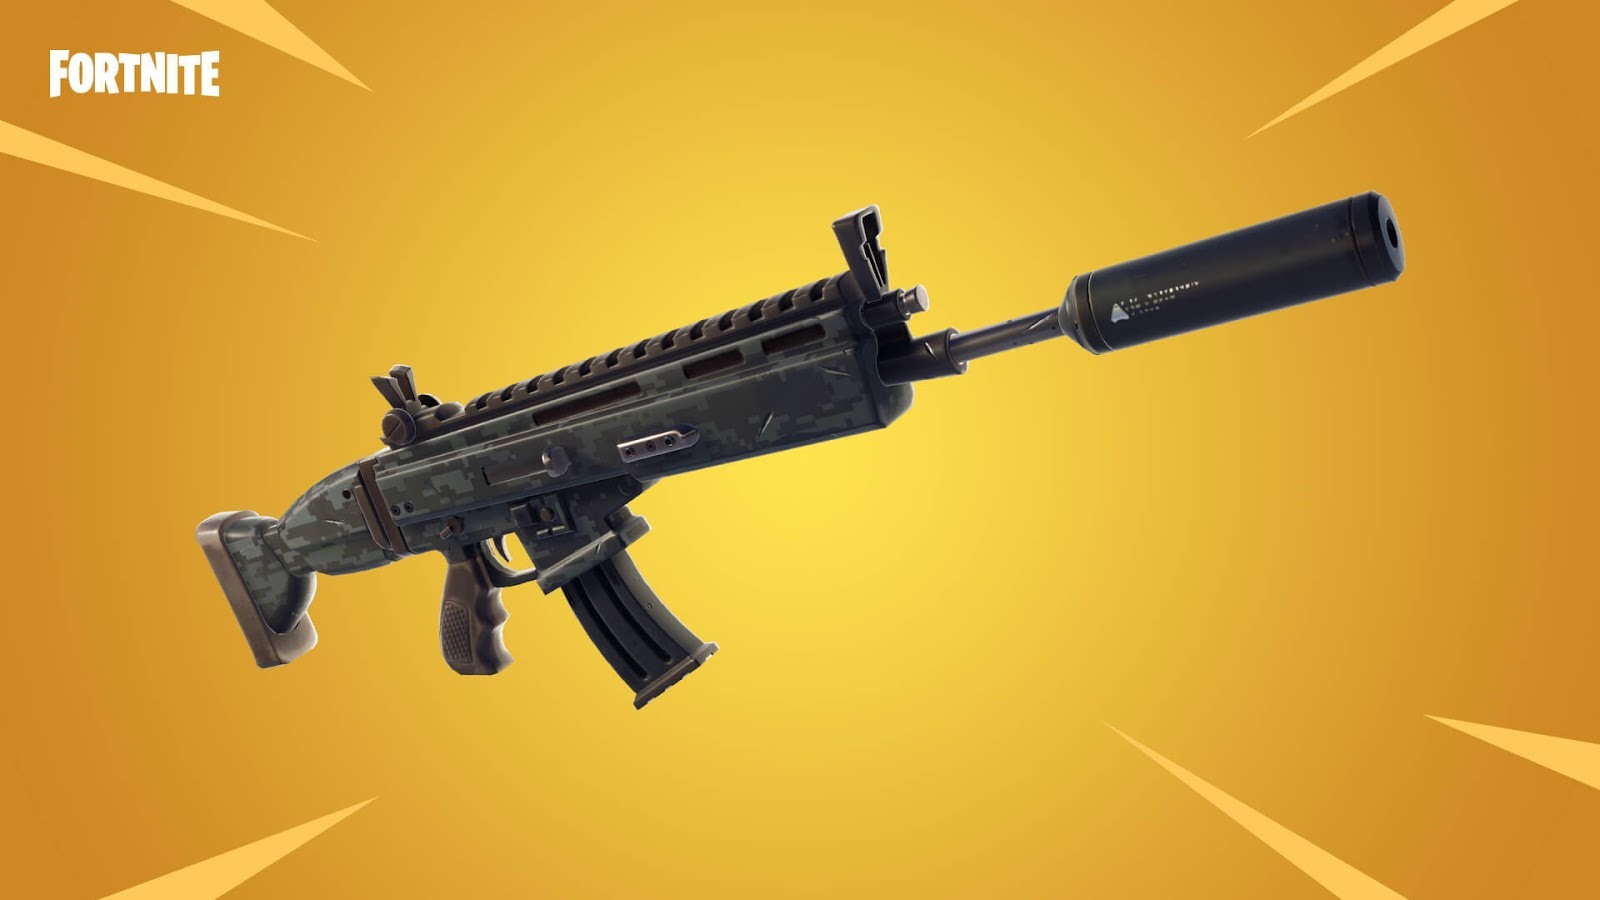 Fortnite V5.40 Content Update Patch Notes - Drum Gun Vaulted, Suppressed Assault Rifle Added